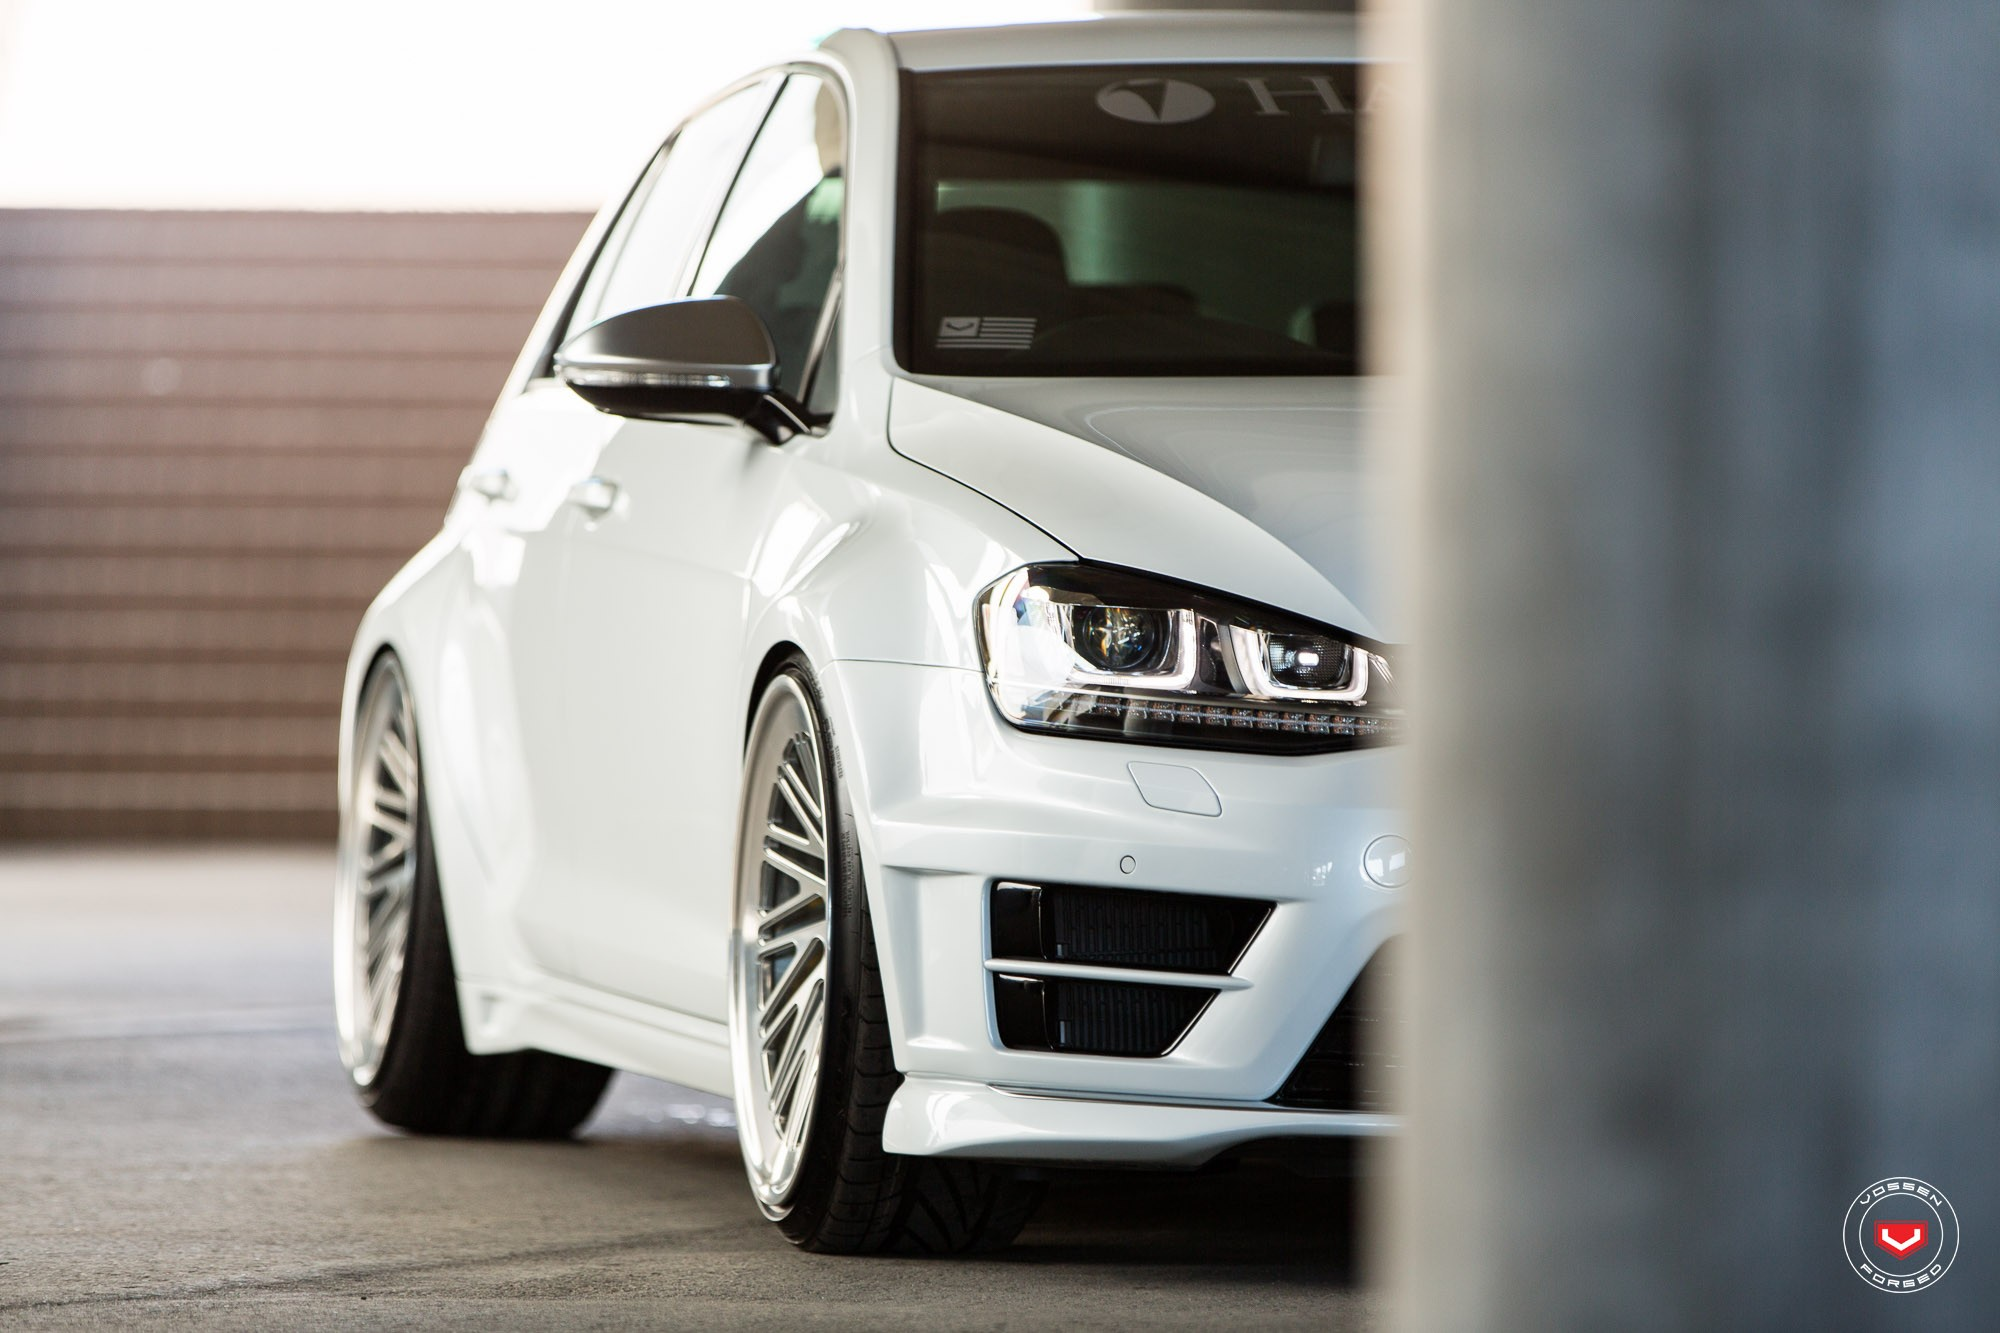 Widebody Golf R Gets Lip Concept Vossen Wheels in Japan - autoevolution